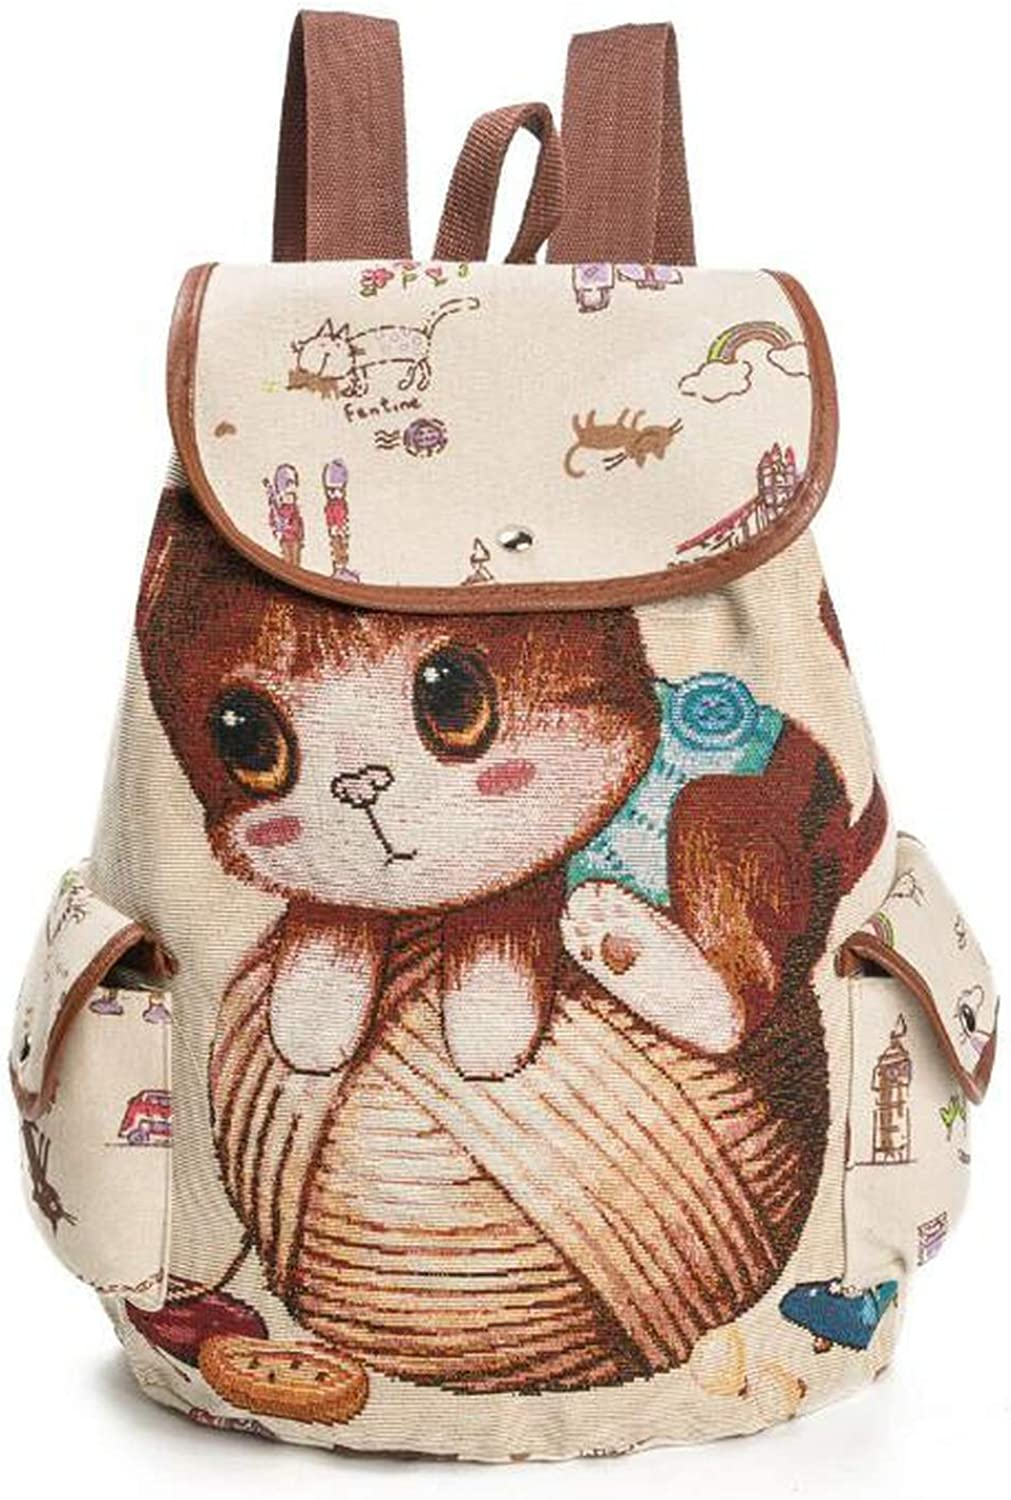 PU Leather Shoulder Bag,Cat And Bird Backpack,Portable Travel School Rucksack,Satchel with Top Handle